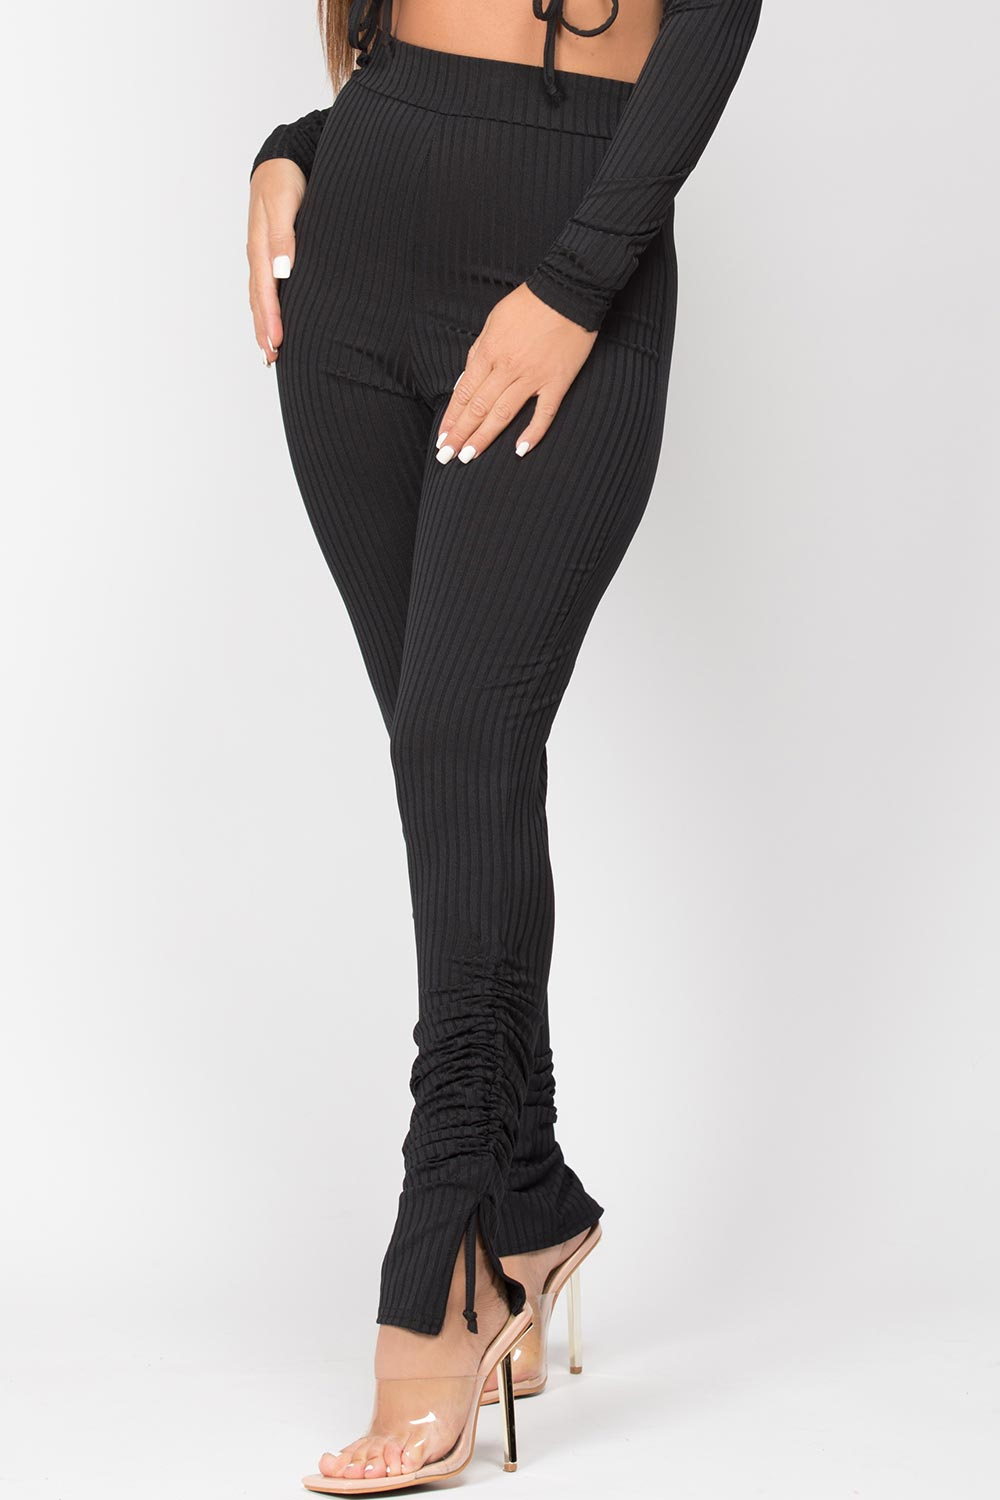 black ruched bottom loungewear set